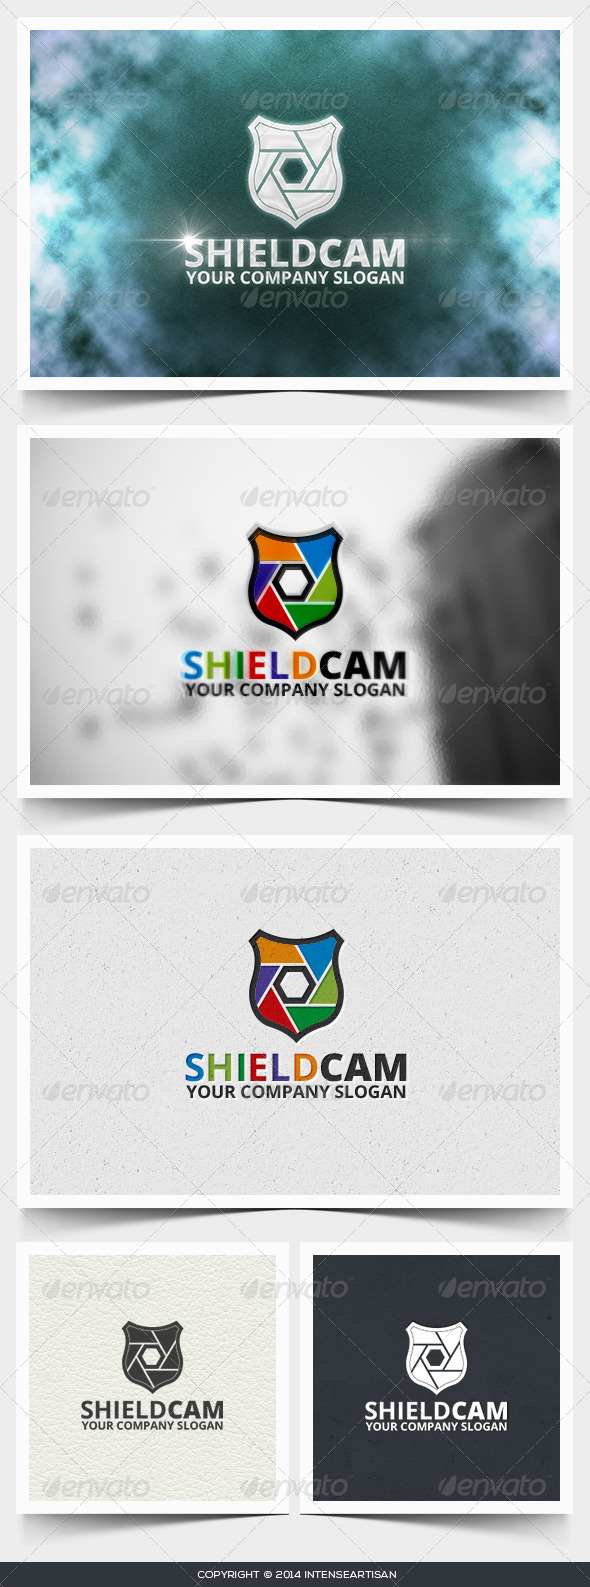 Shield Cam Logo Template - Objects Logo Templates